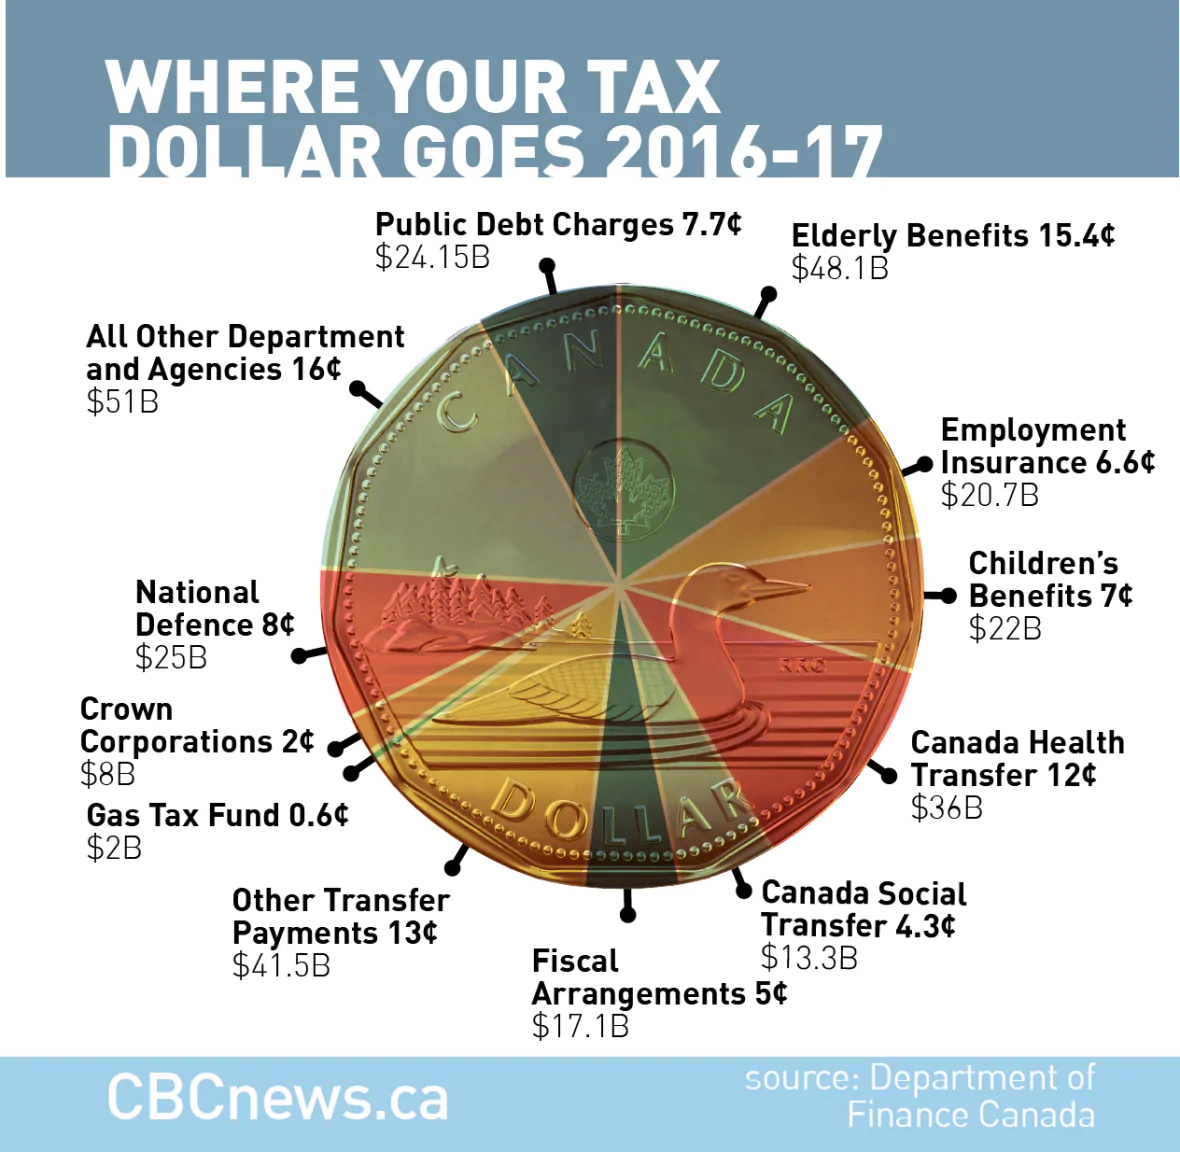 Where Your Tax Dollar Goes, Canada 2016-2017